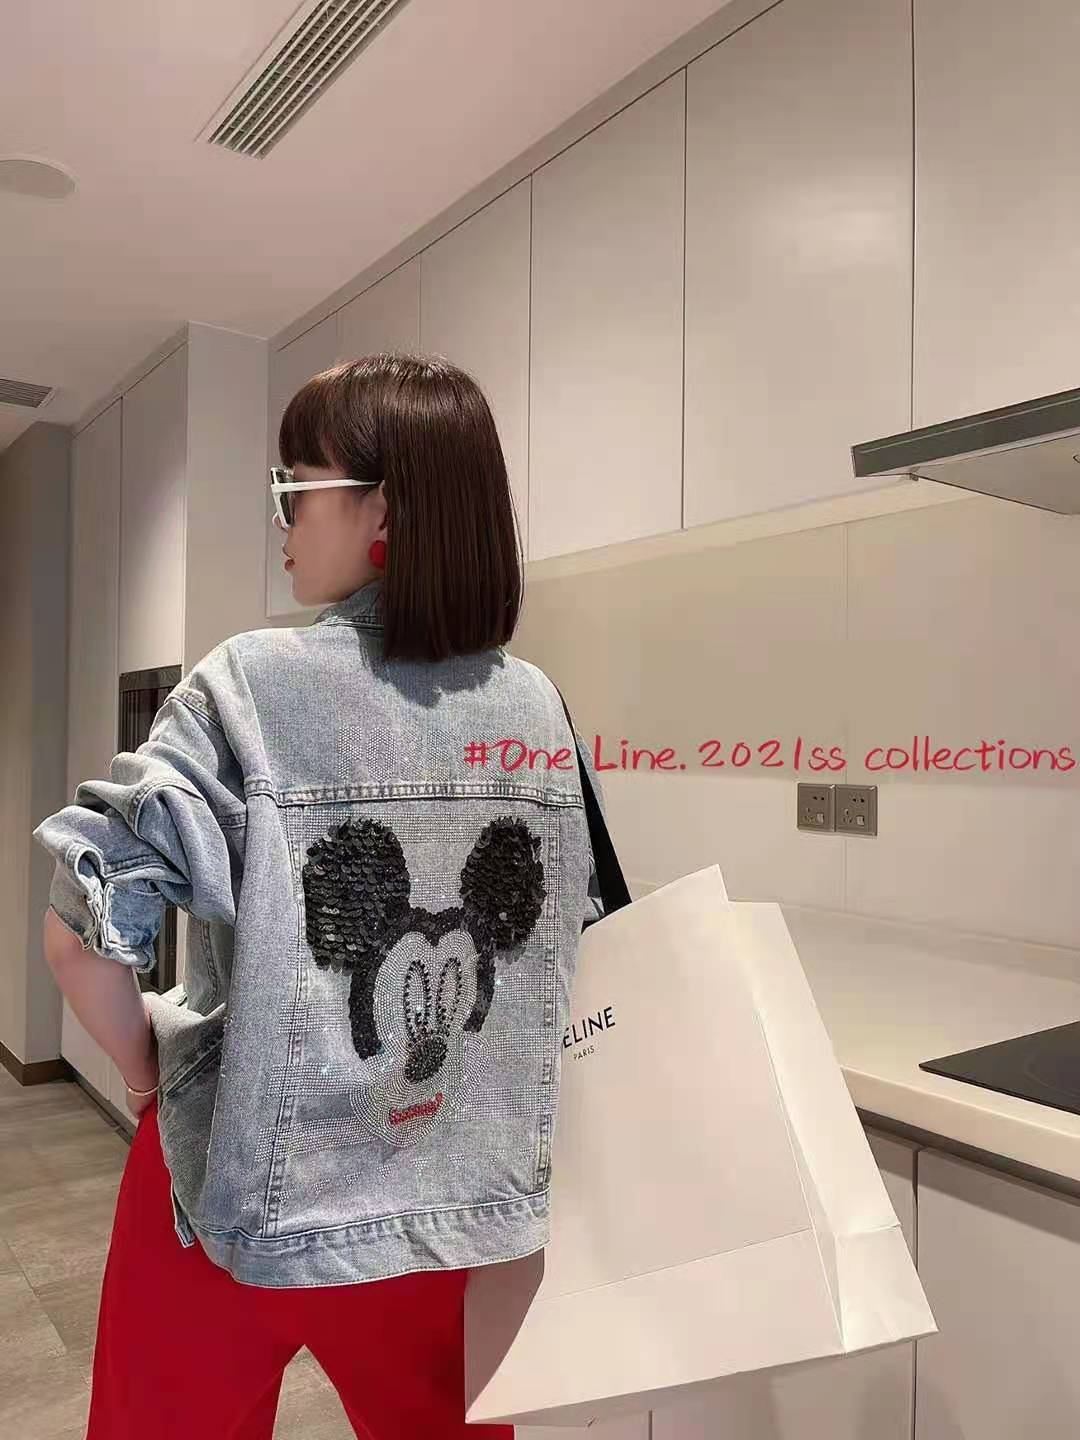 European station heavy industry Sequin Mickey Mouse Jeans Jacket Womens 2021 spring and autumn loose jacket Baseball Jacket fashion